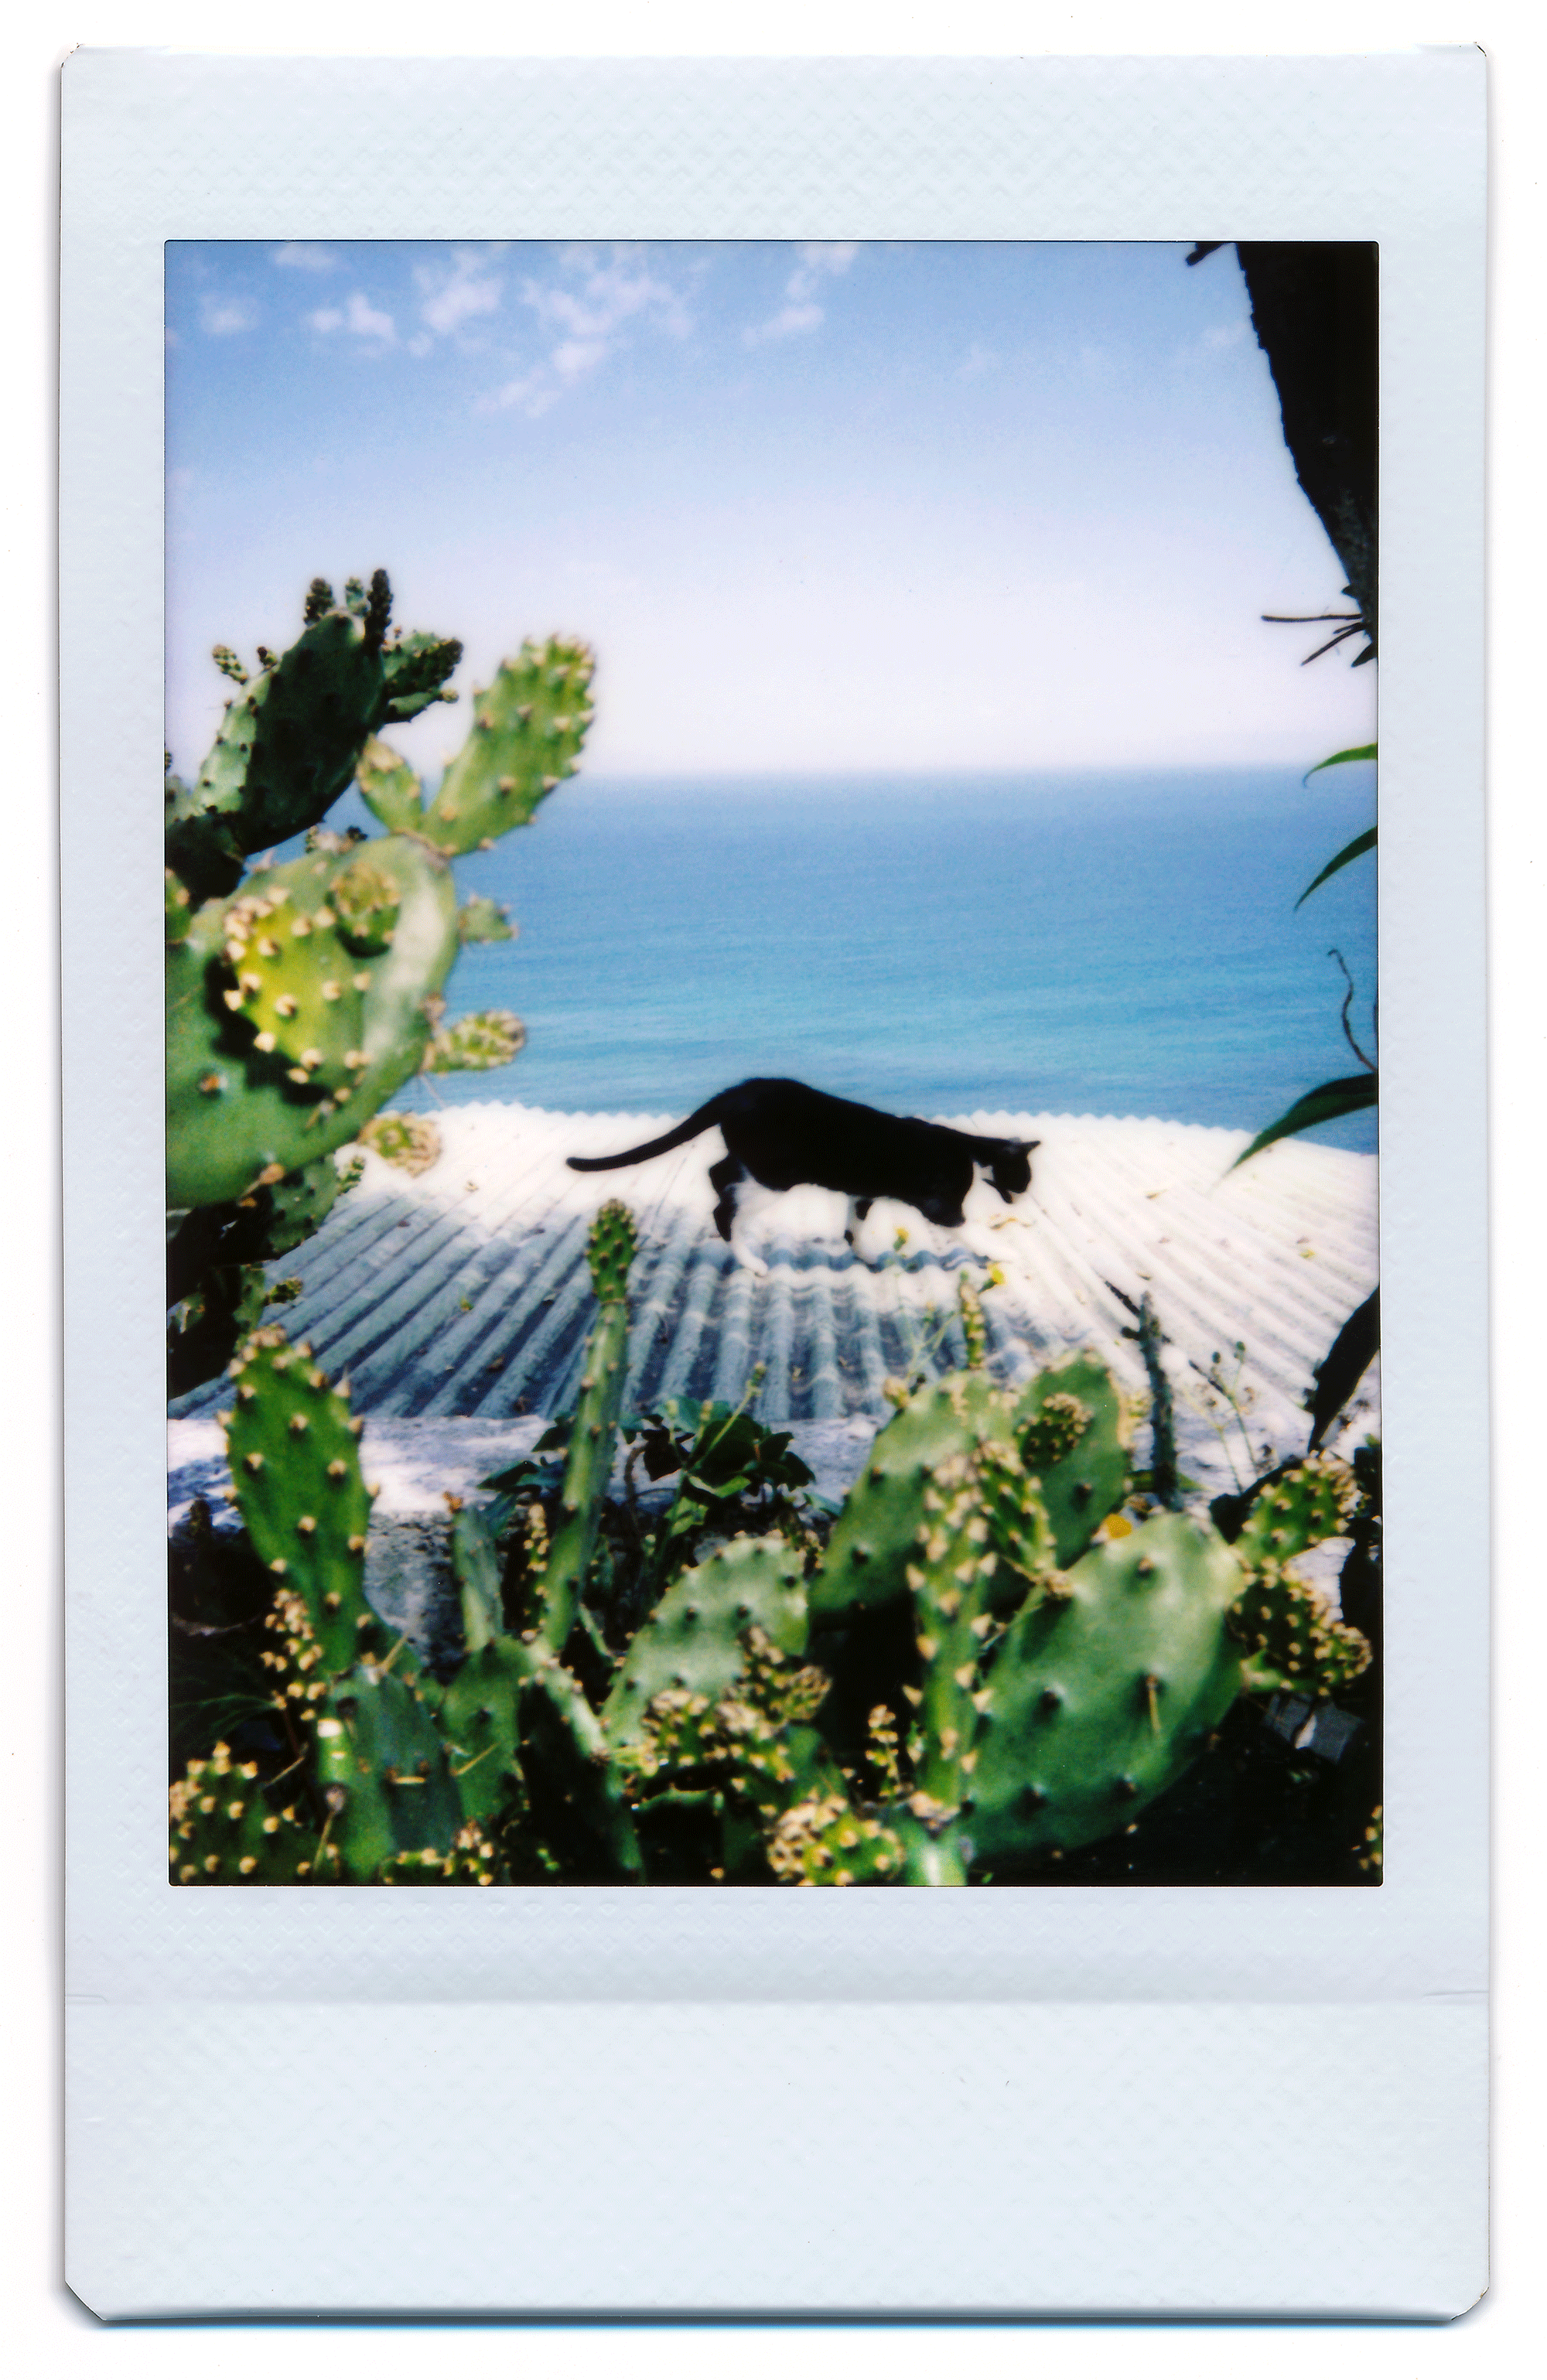 The Cat Outside  takes place in Tangier, Morocco at the old haunts of various beat generation writers and ex-pats, including William S. Burroughs to whom the series' title is in reference to.